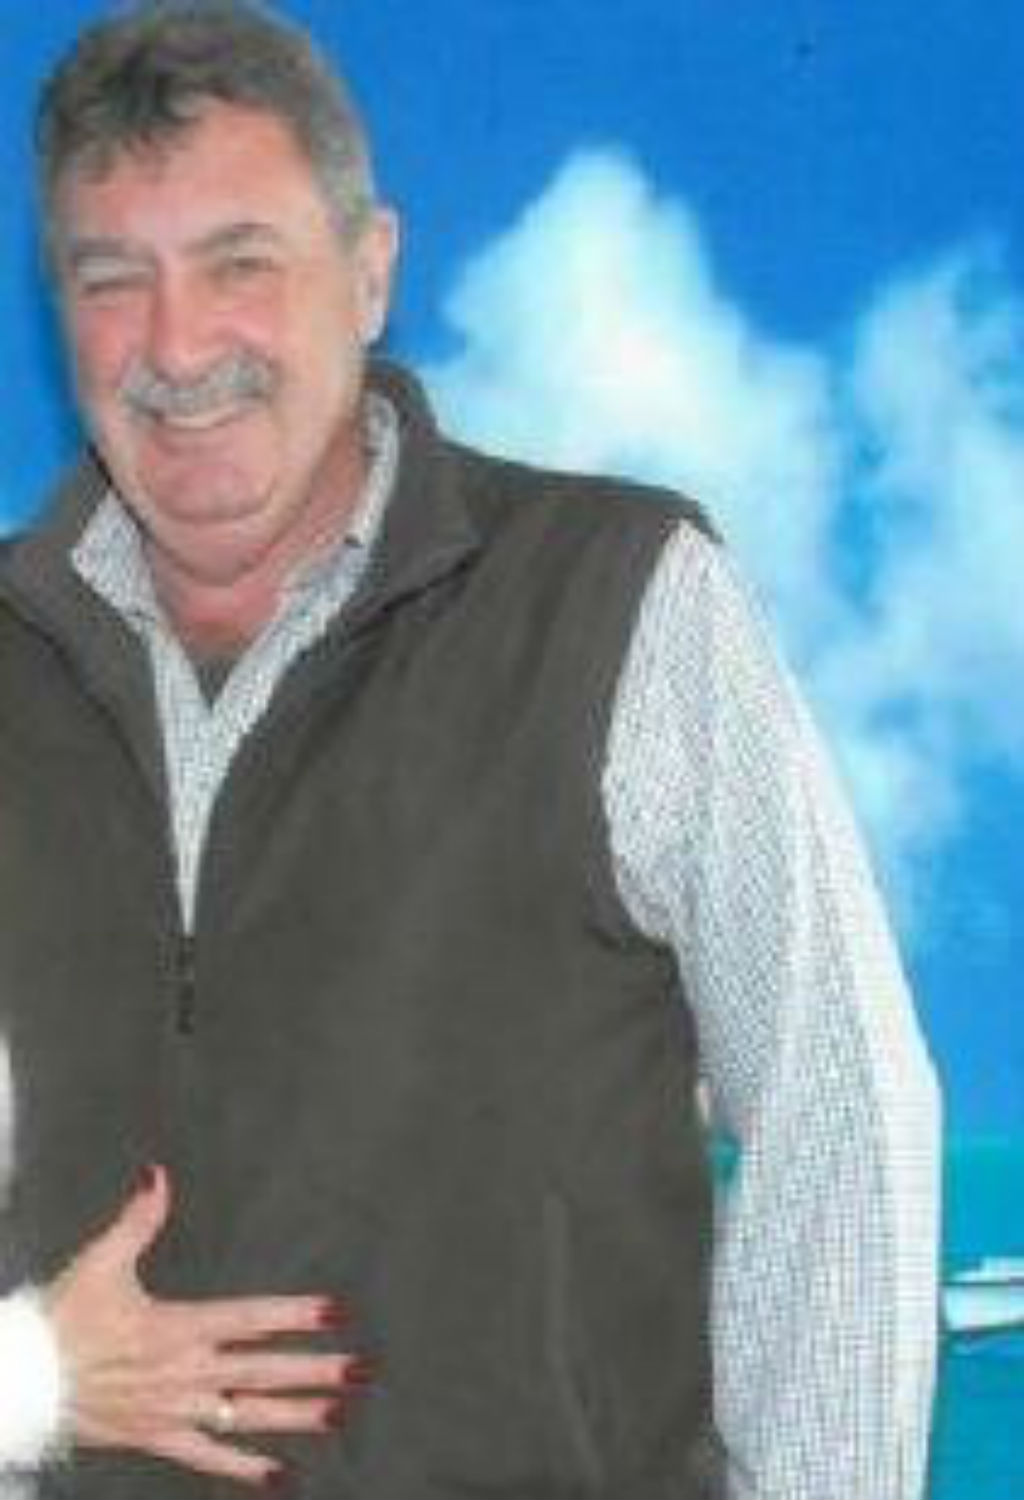 Mr Robson was last seen wearing a long-sleeved pale blue checked shirt, brown vest, blue jeans and brown shoes. (QLD Police)